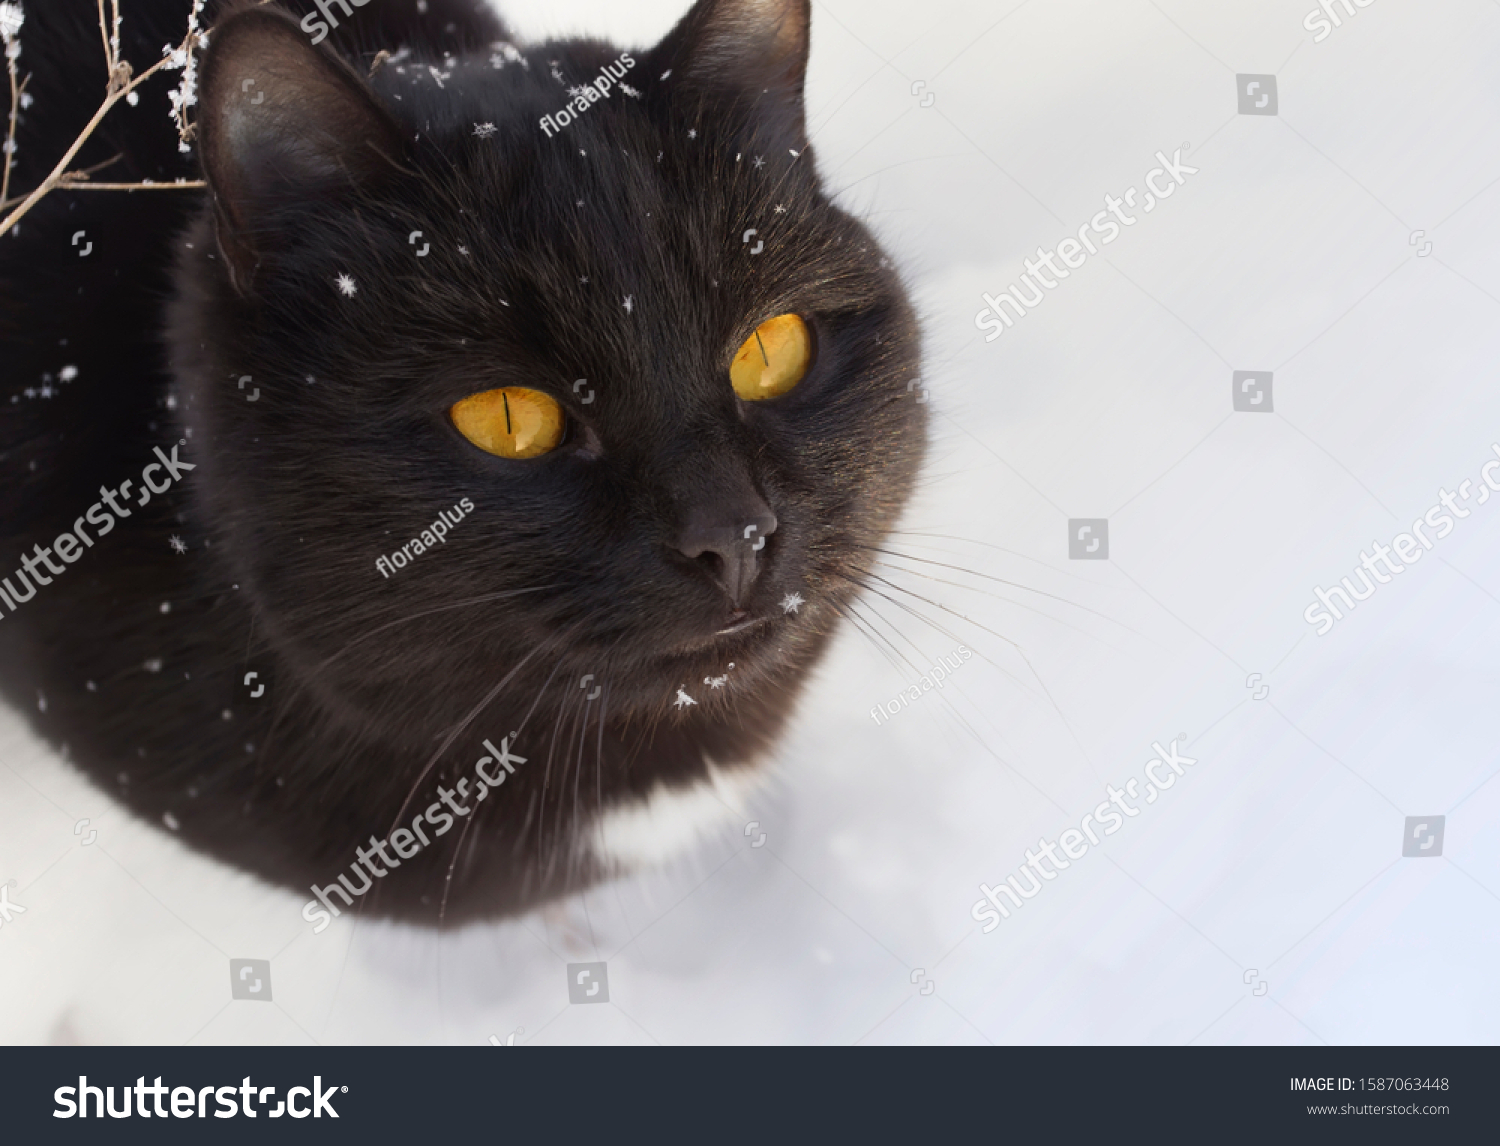 Winter portrait of a black cat with bright yellow eyes. A pet in a snow garden.